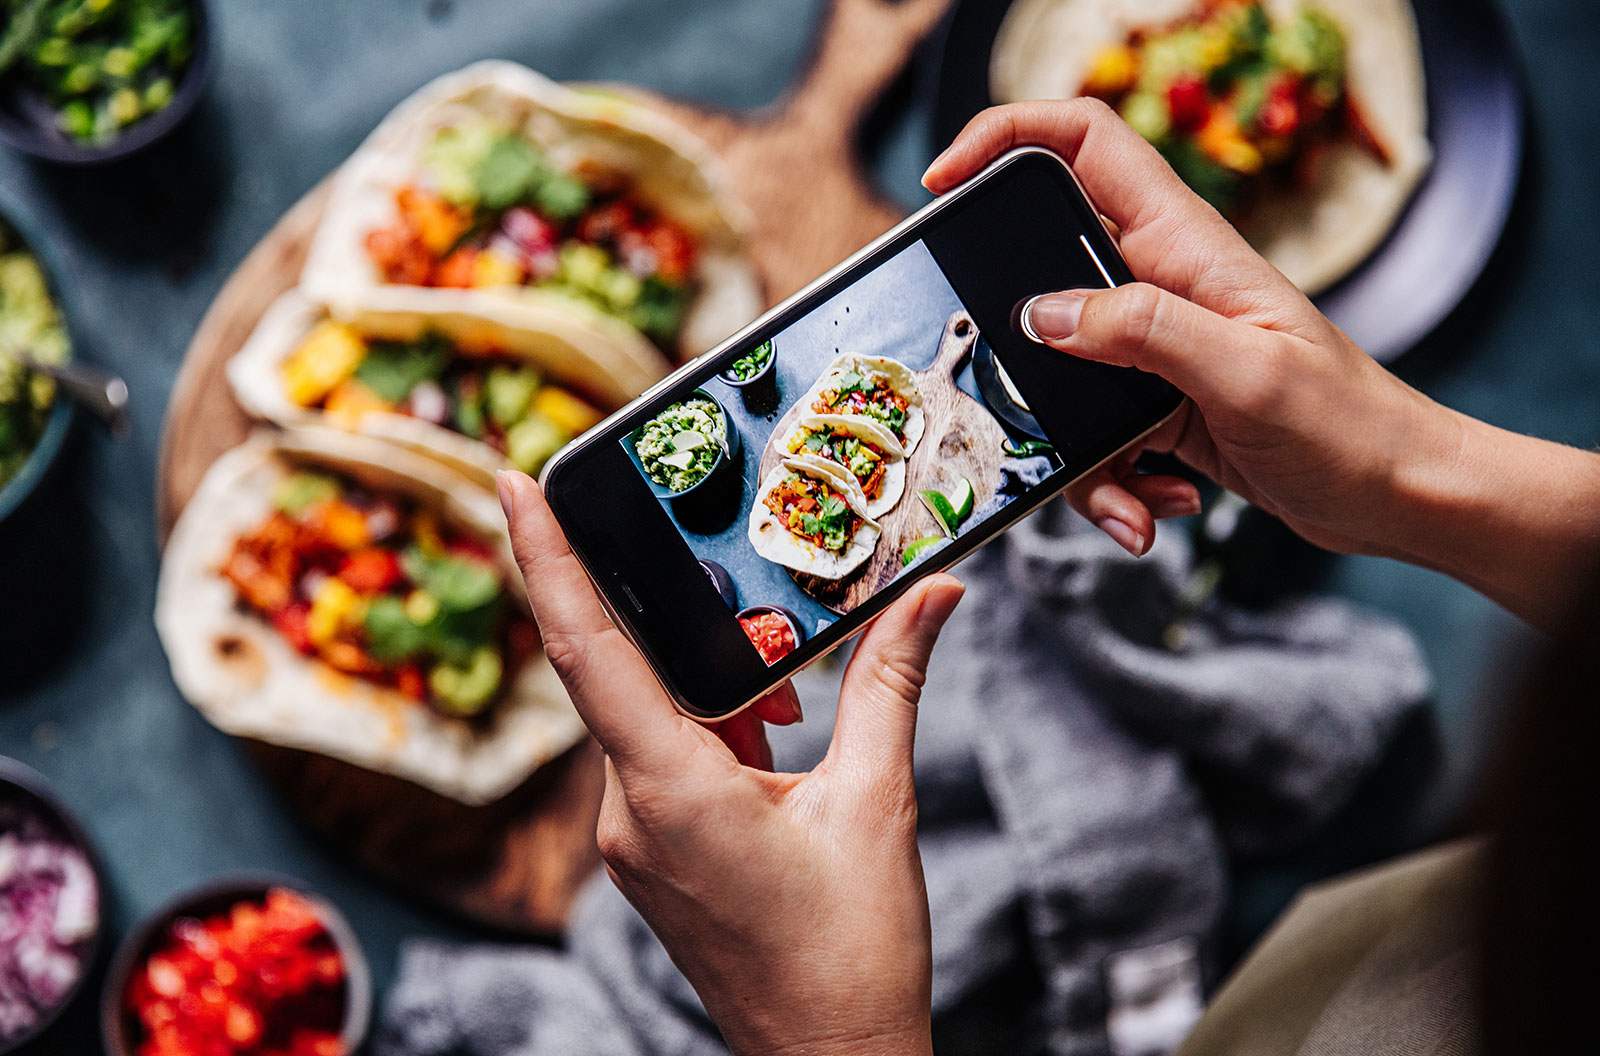 Hand of a person taking photograph of tacos on table with a mobile phone